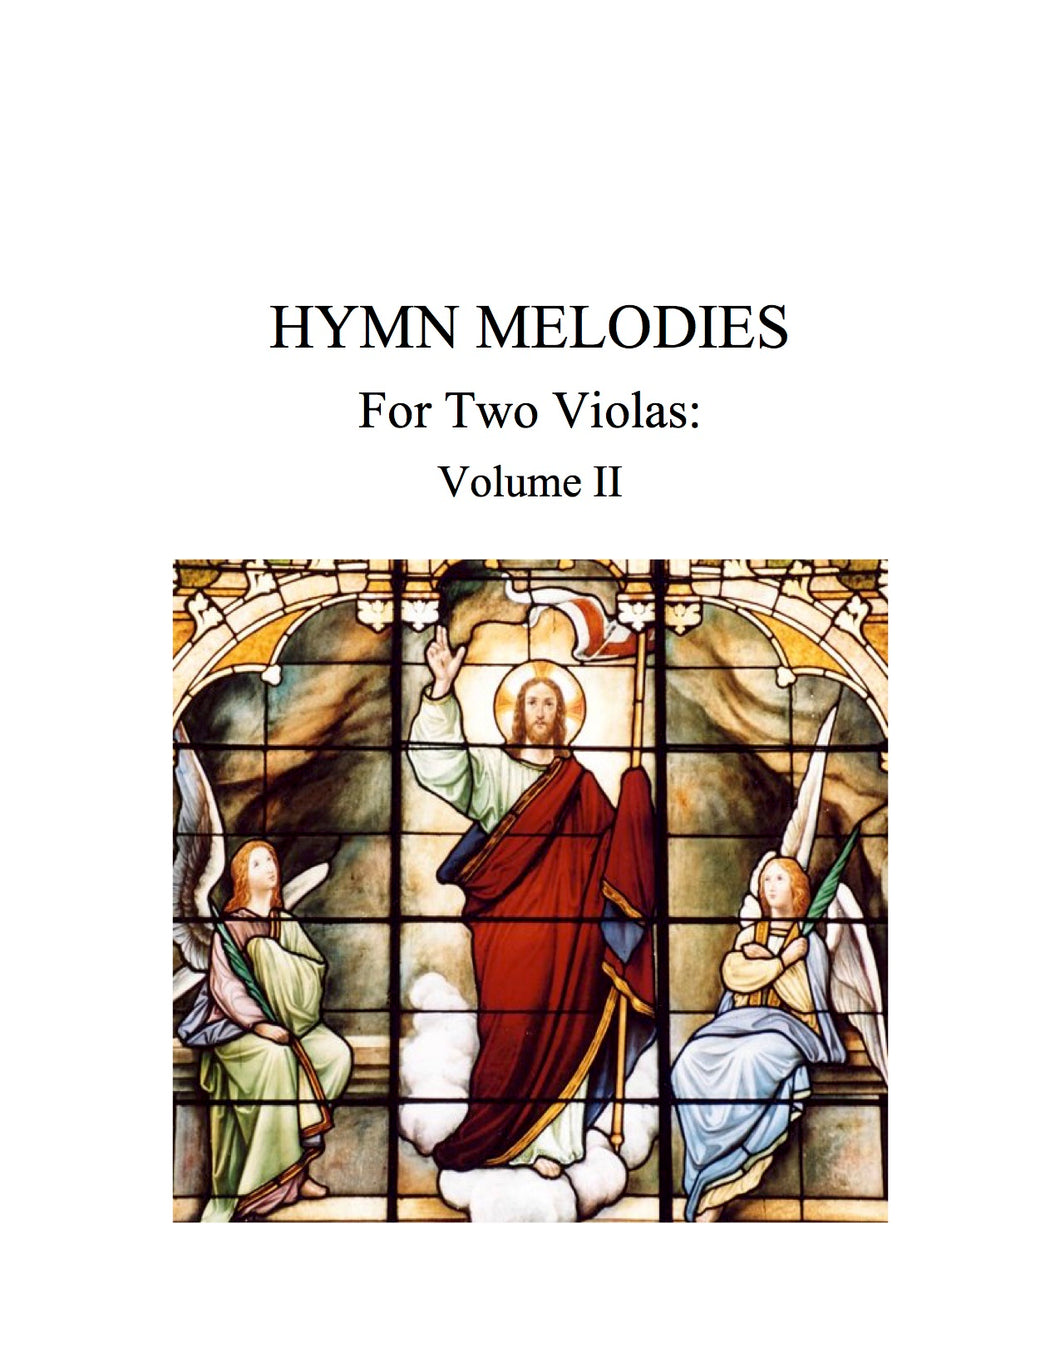 077 - Hymn Melodies for Two Violas, Volume II